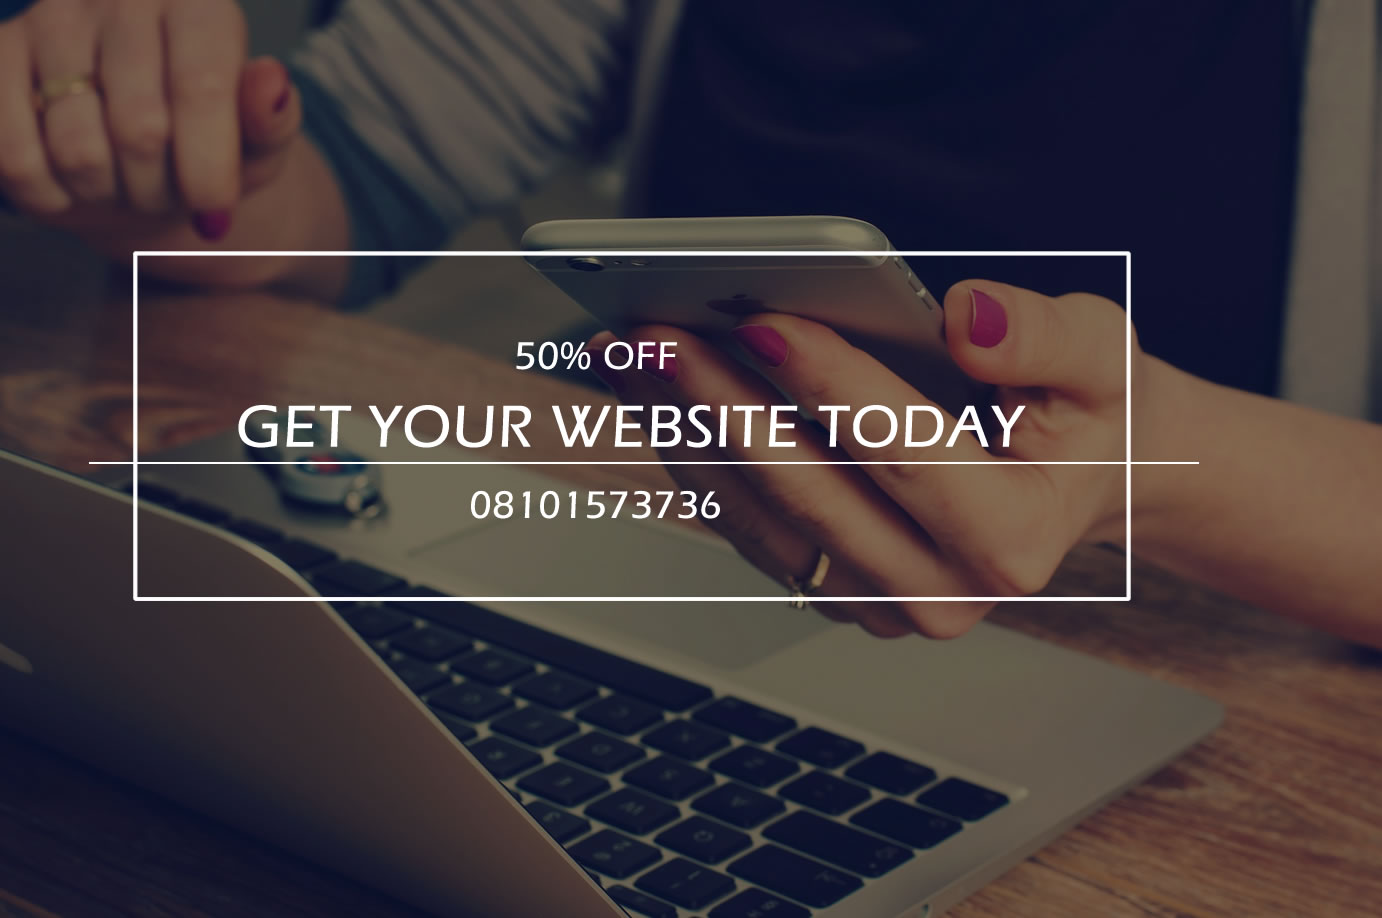 GET YOUR WEBSITE TODAY